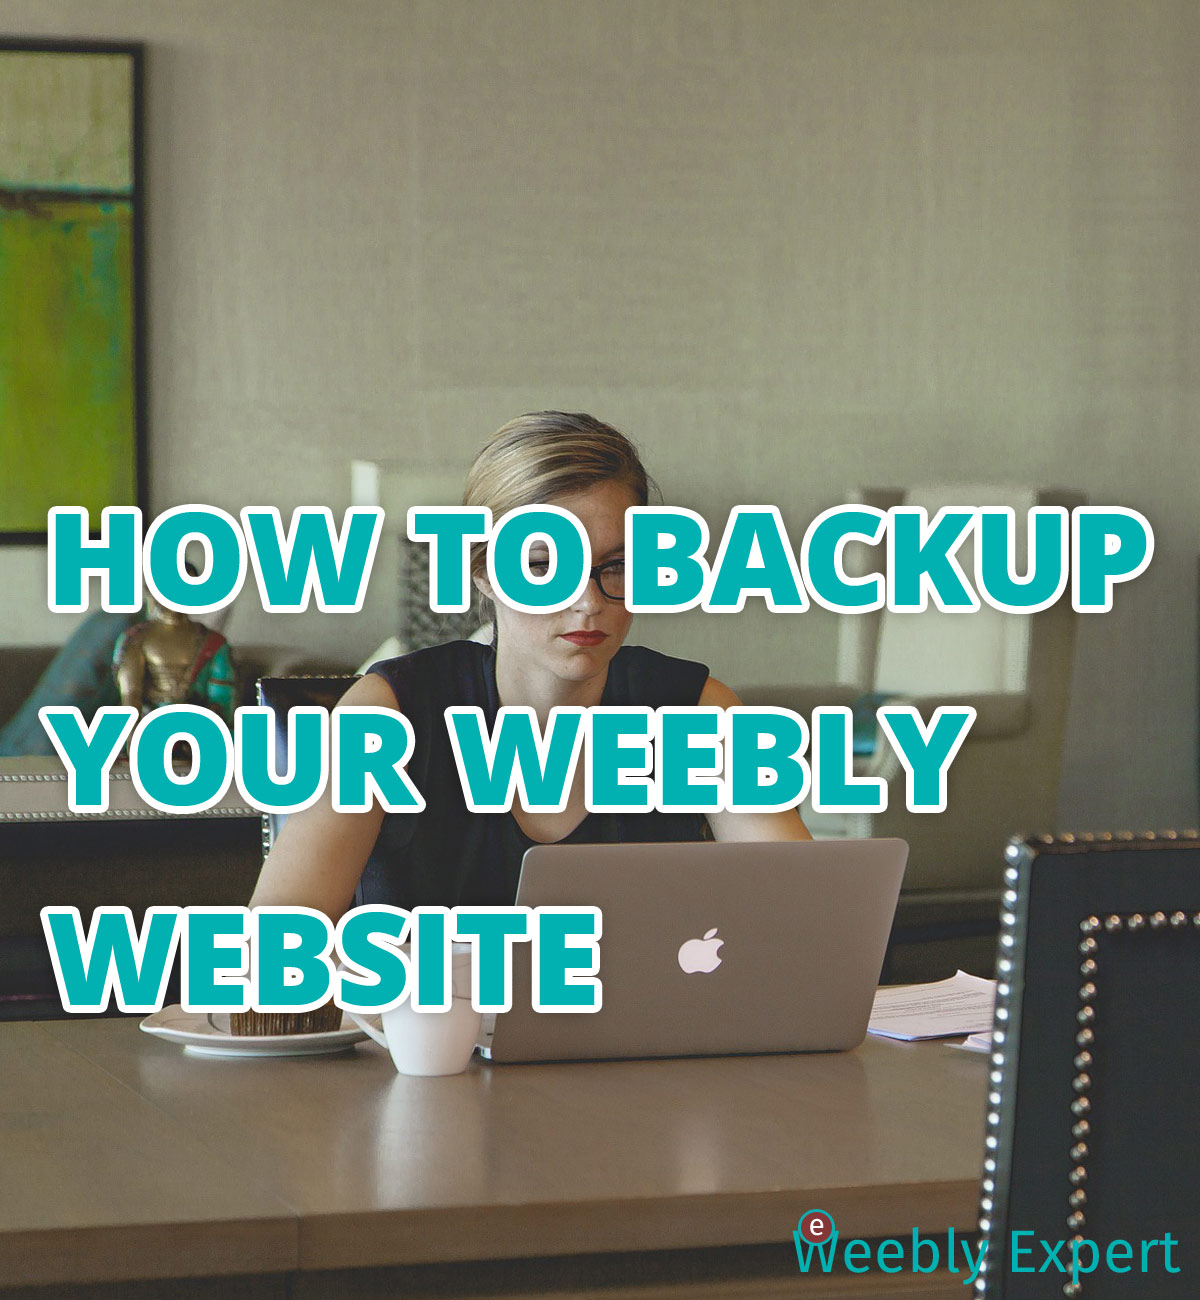 how to backup weebly website